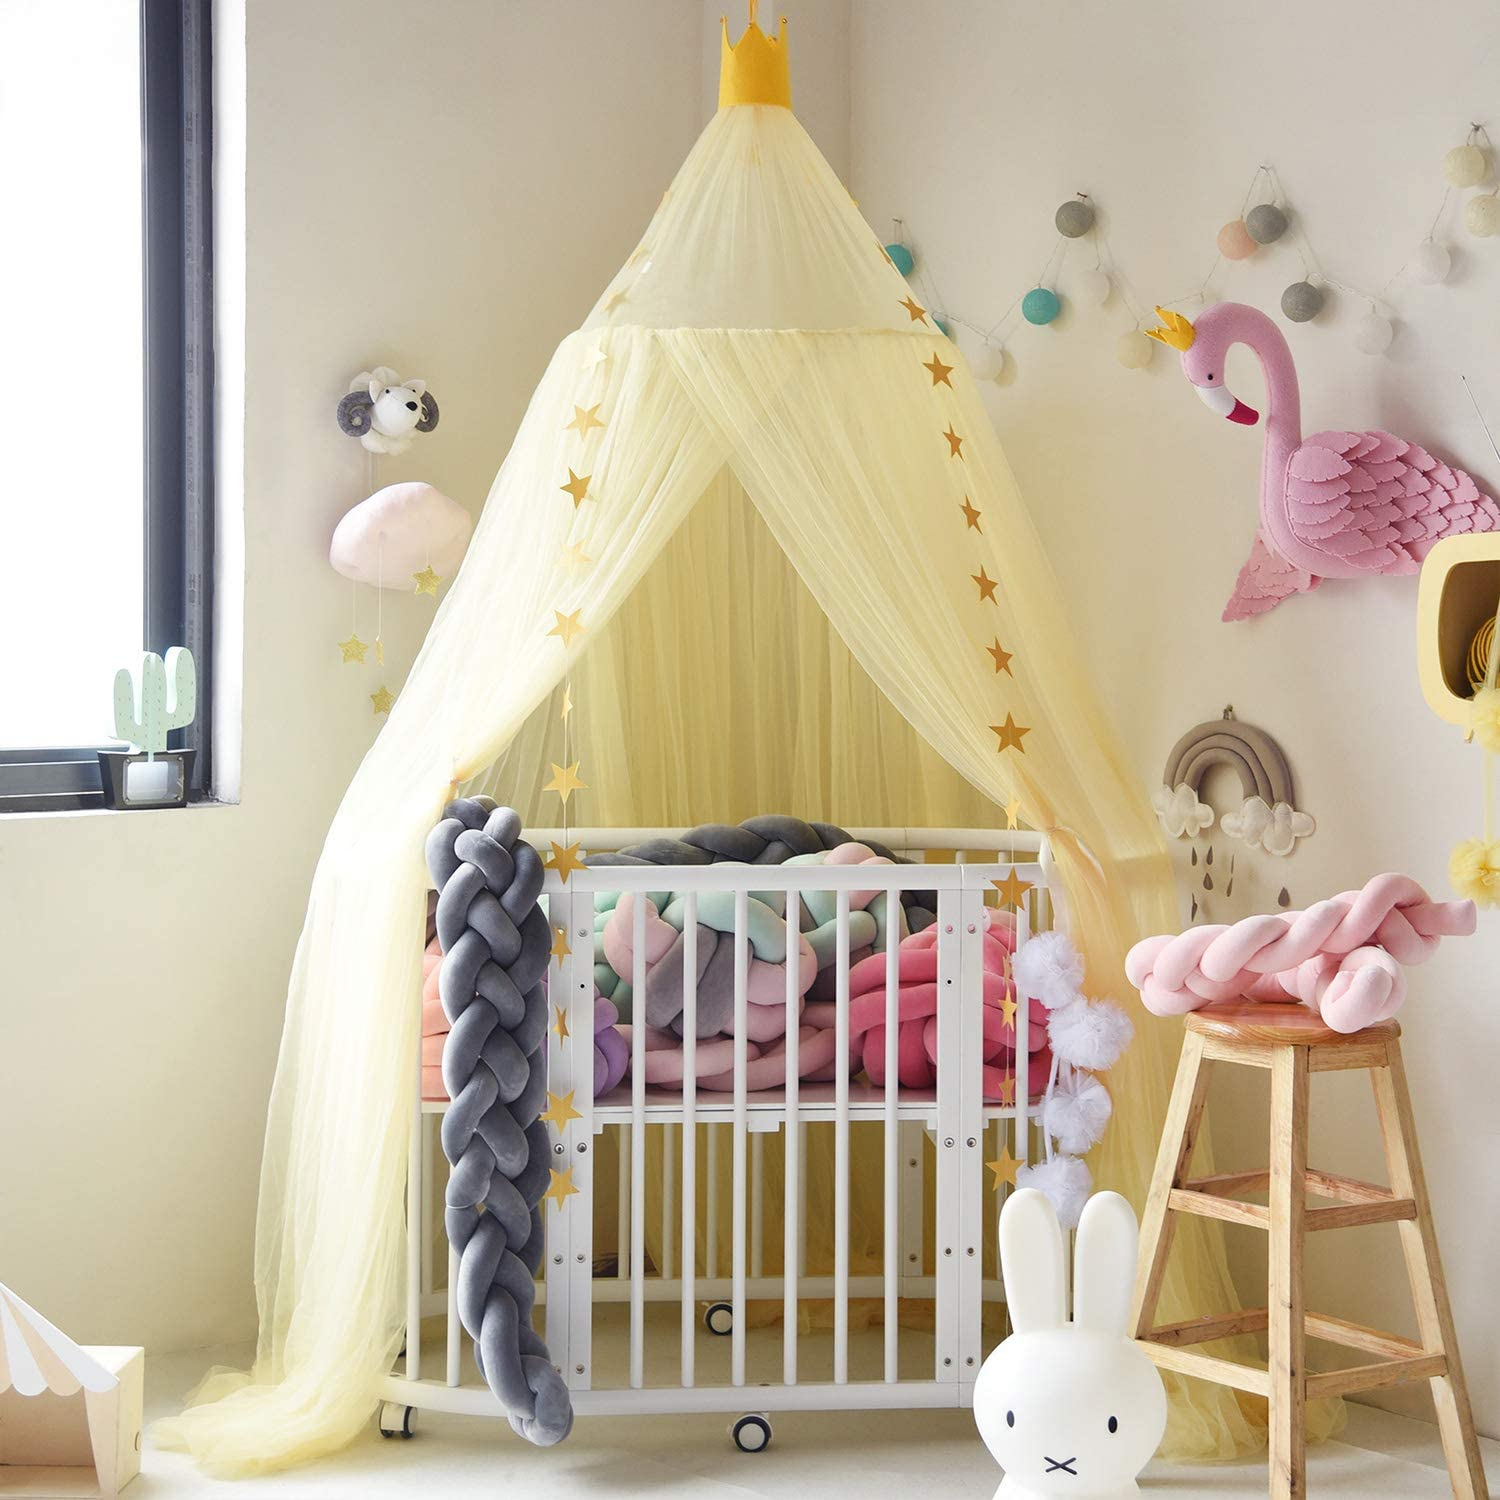 Jolitac Princess Bed Canopy for Kids Room Decor Round Lace Mosquito Net Play Tent Baby House Canopys Yarn Girls Dome Netting Curtains Girls Games House Castle (Yellow)